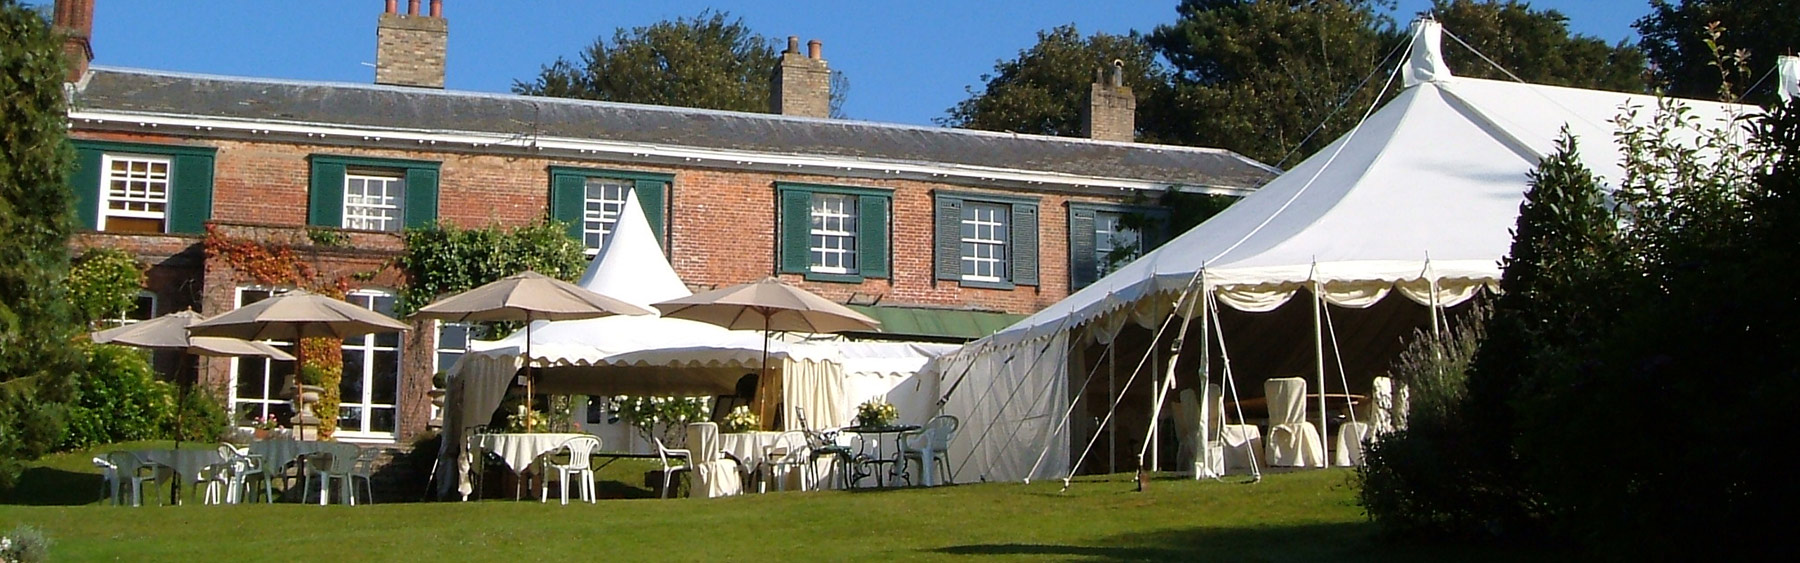 Bespoke Marquee Projects